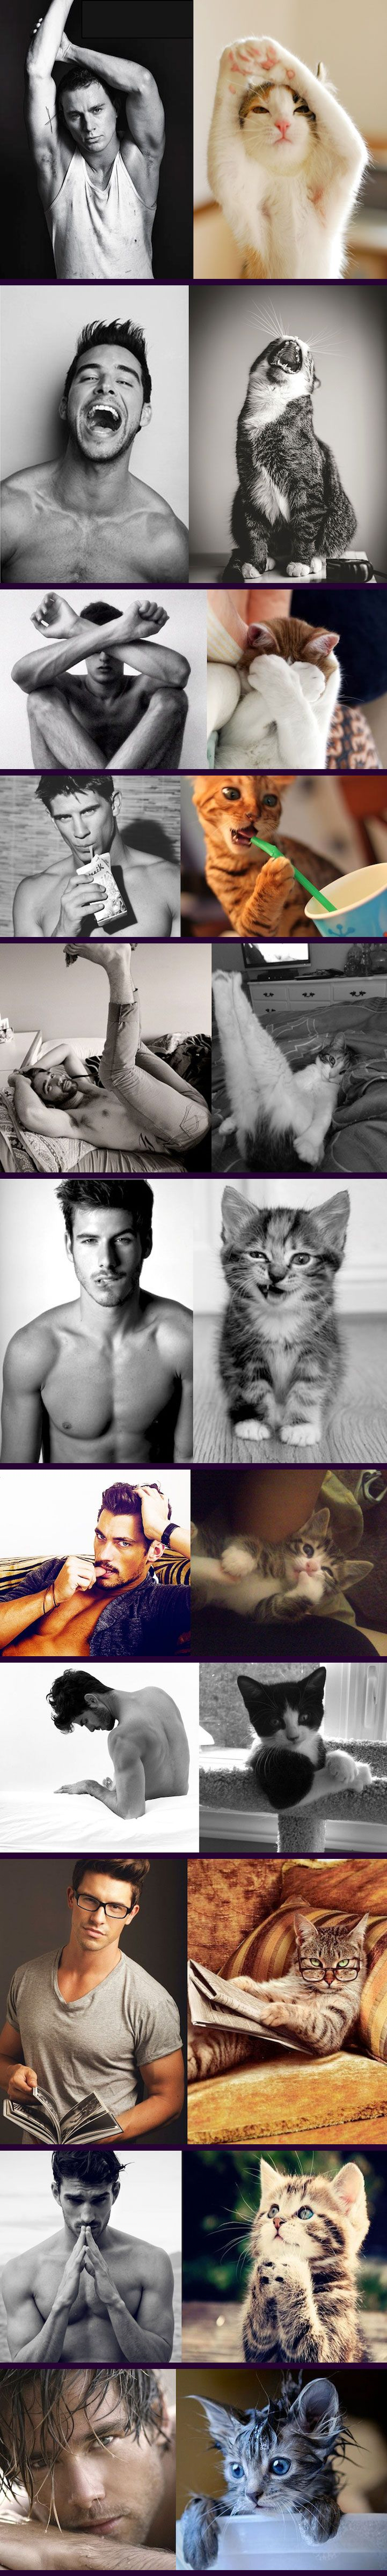 My Cat Does It Better Than You! - Hot guys n cats. Why has no one thought of this before?!